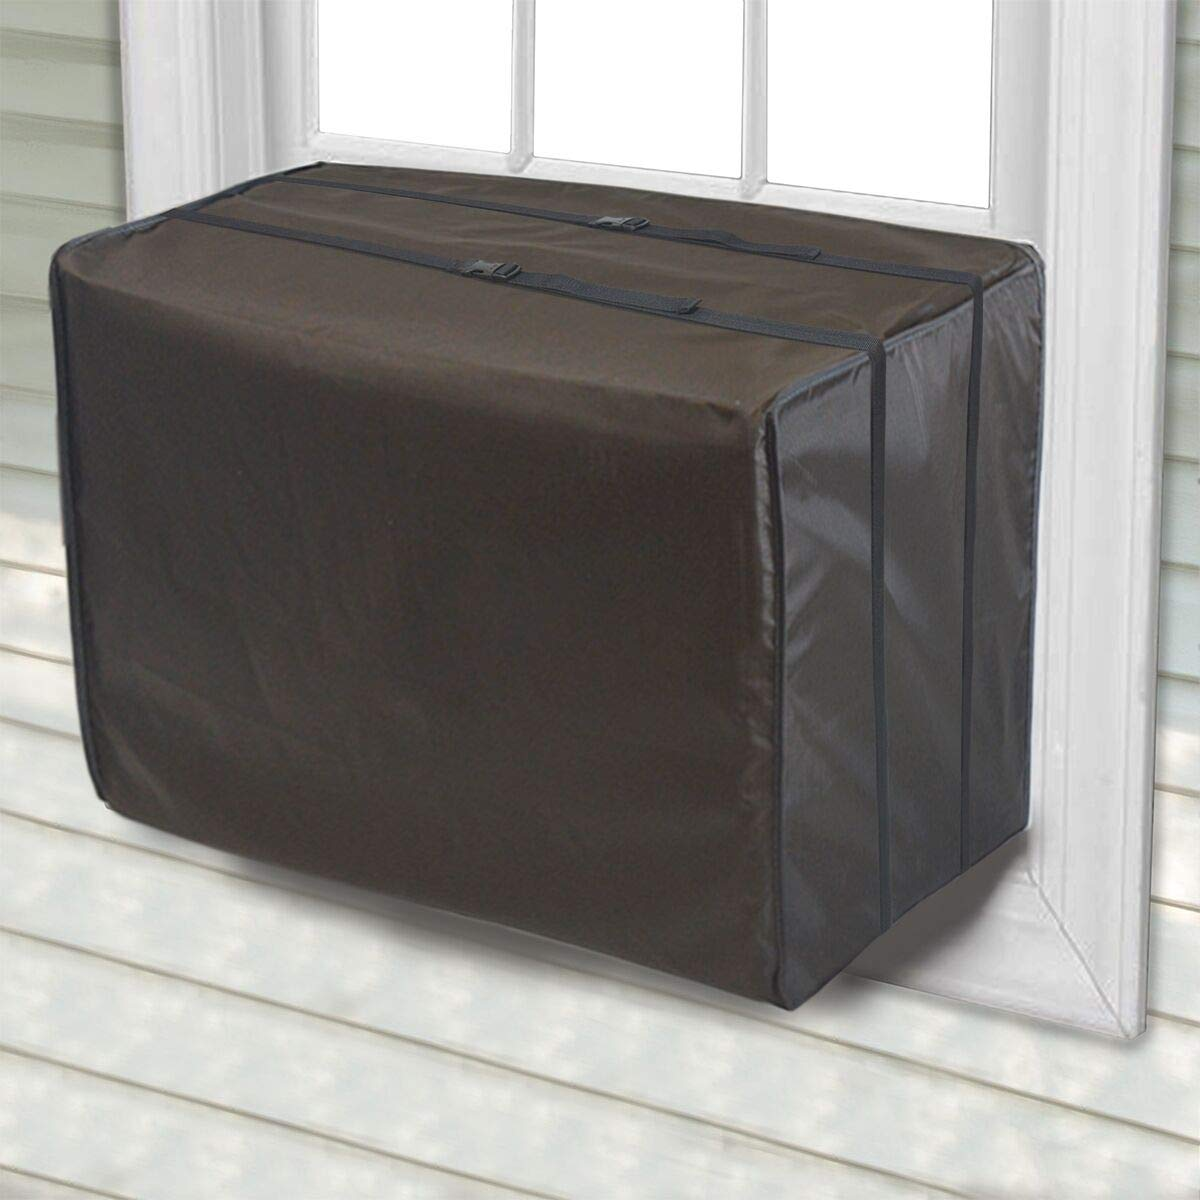 Jeacent Window Air Conditioner Cover Small, Bottom Covered